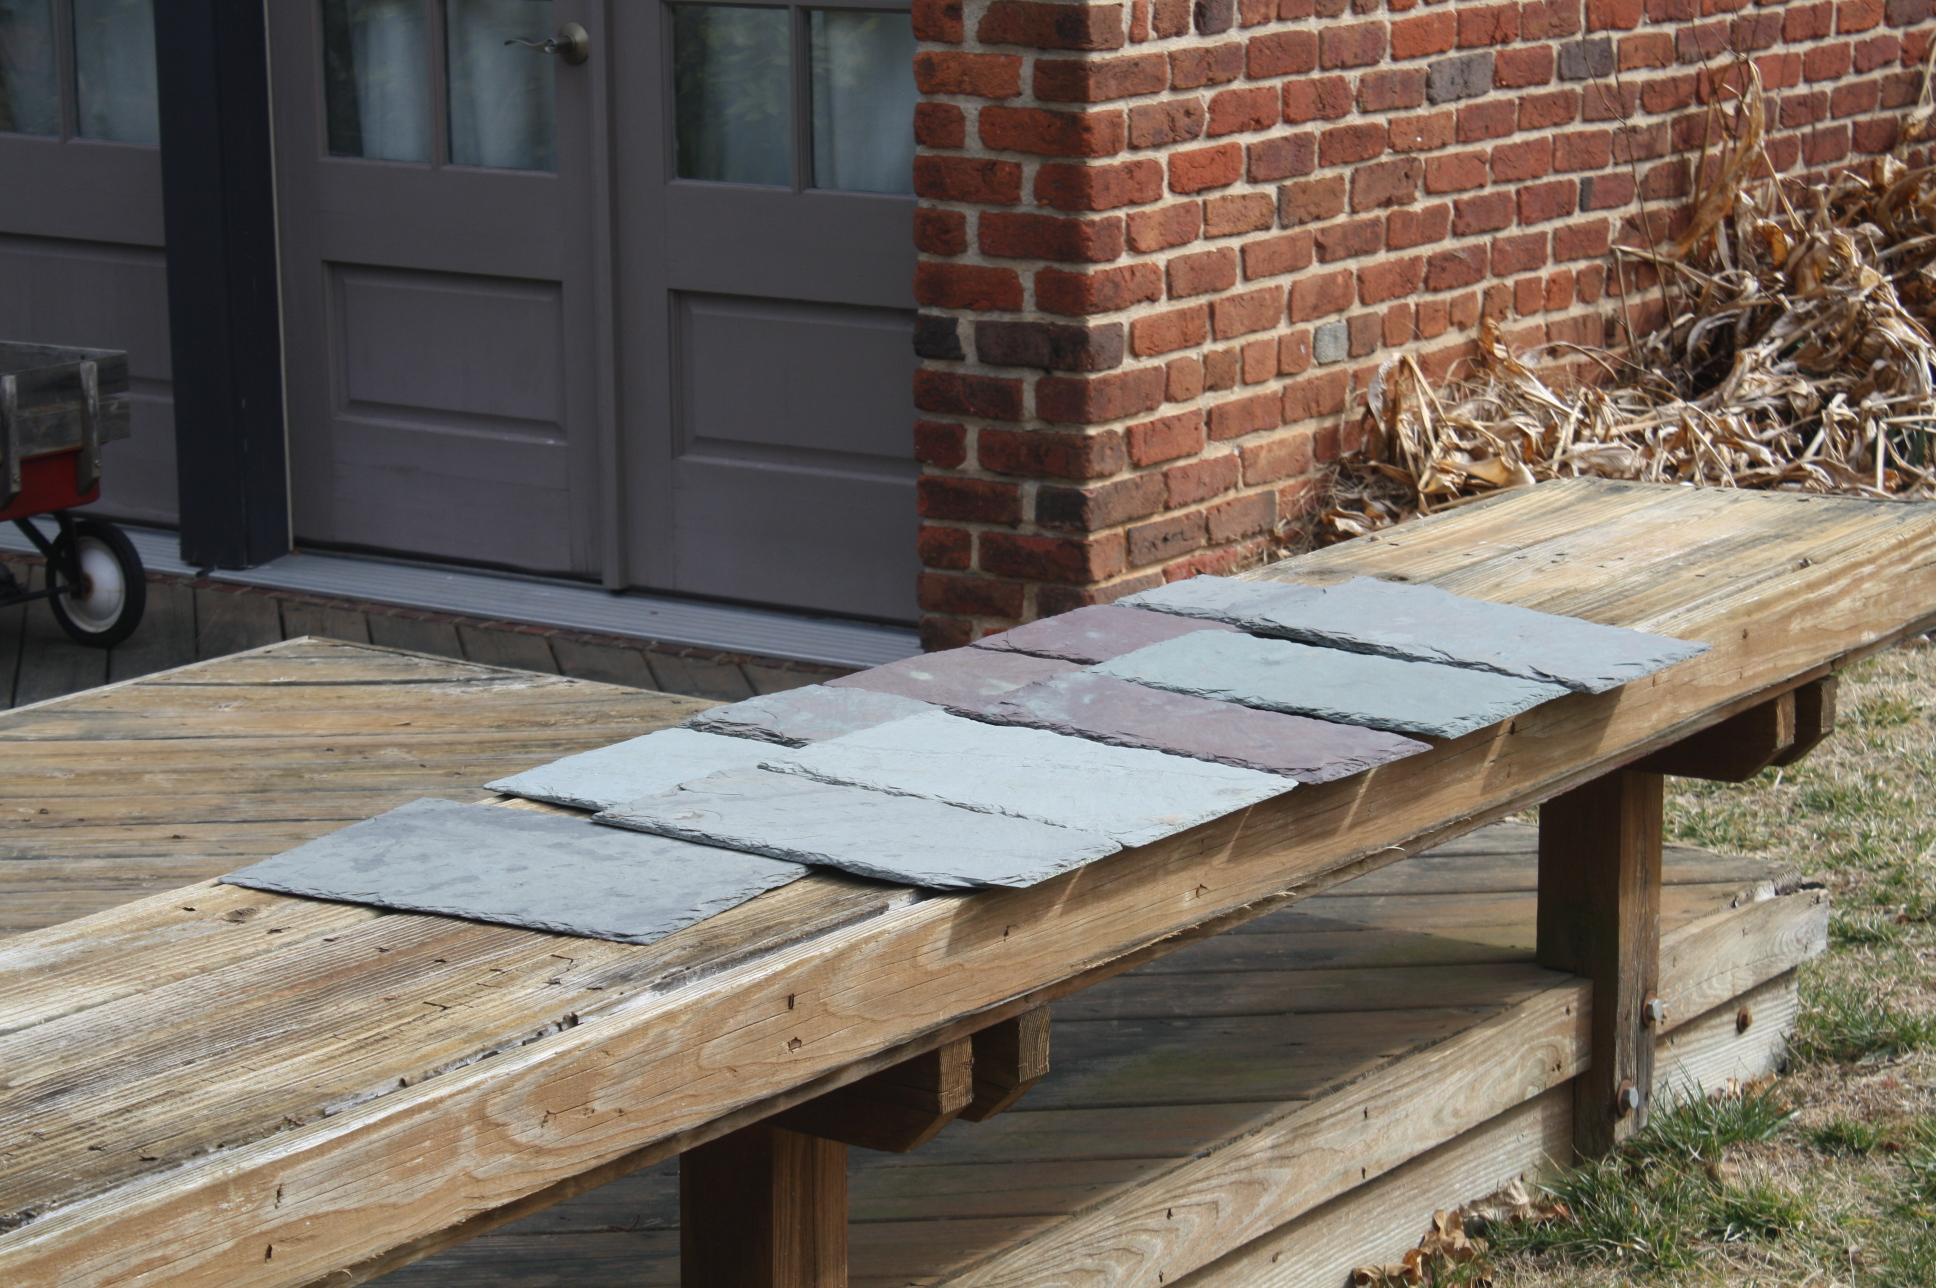 1 400 Sqft Of Vermont Slate Roof Tiles For Sale Antiques